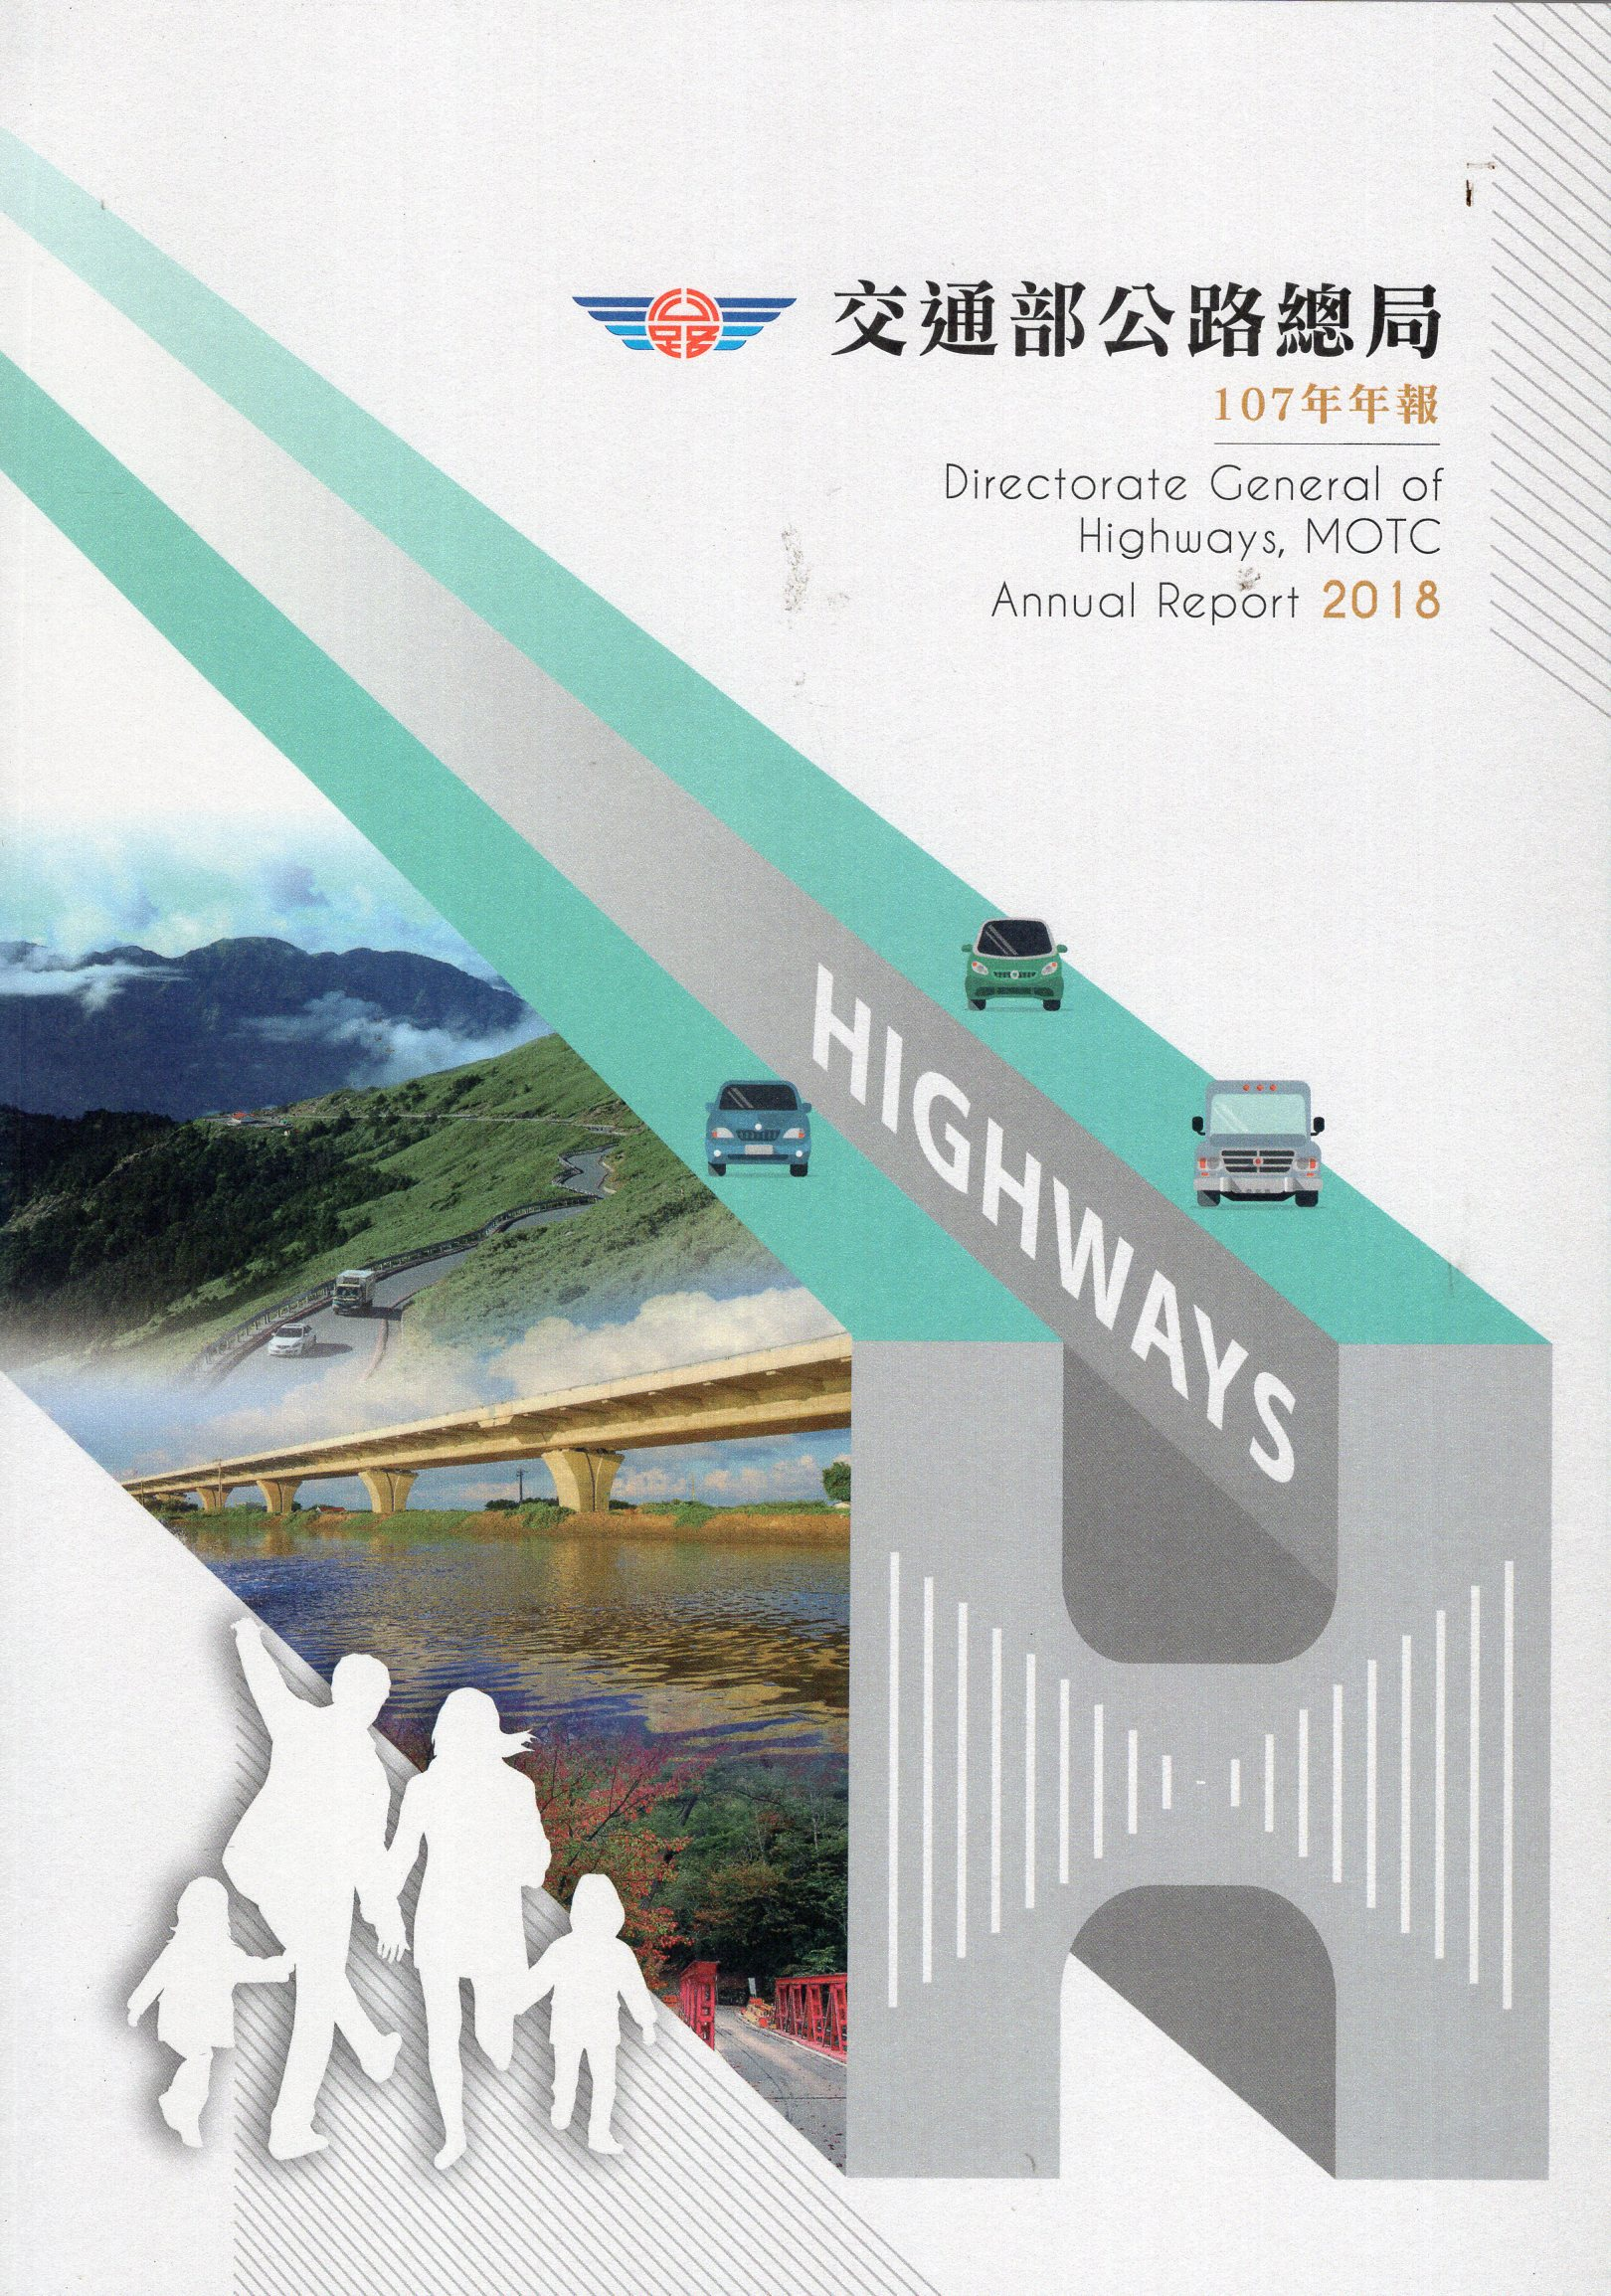 2018 Annual Report of Directorate General of Highways, MOTC